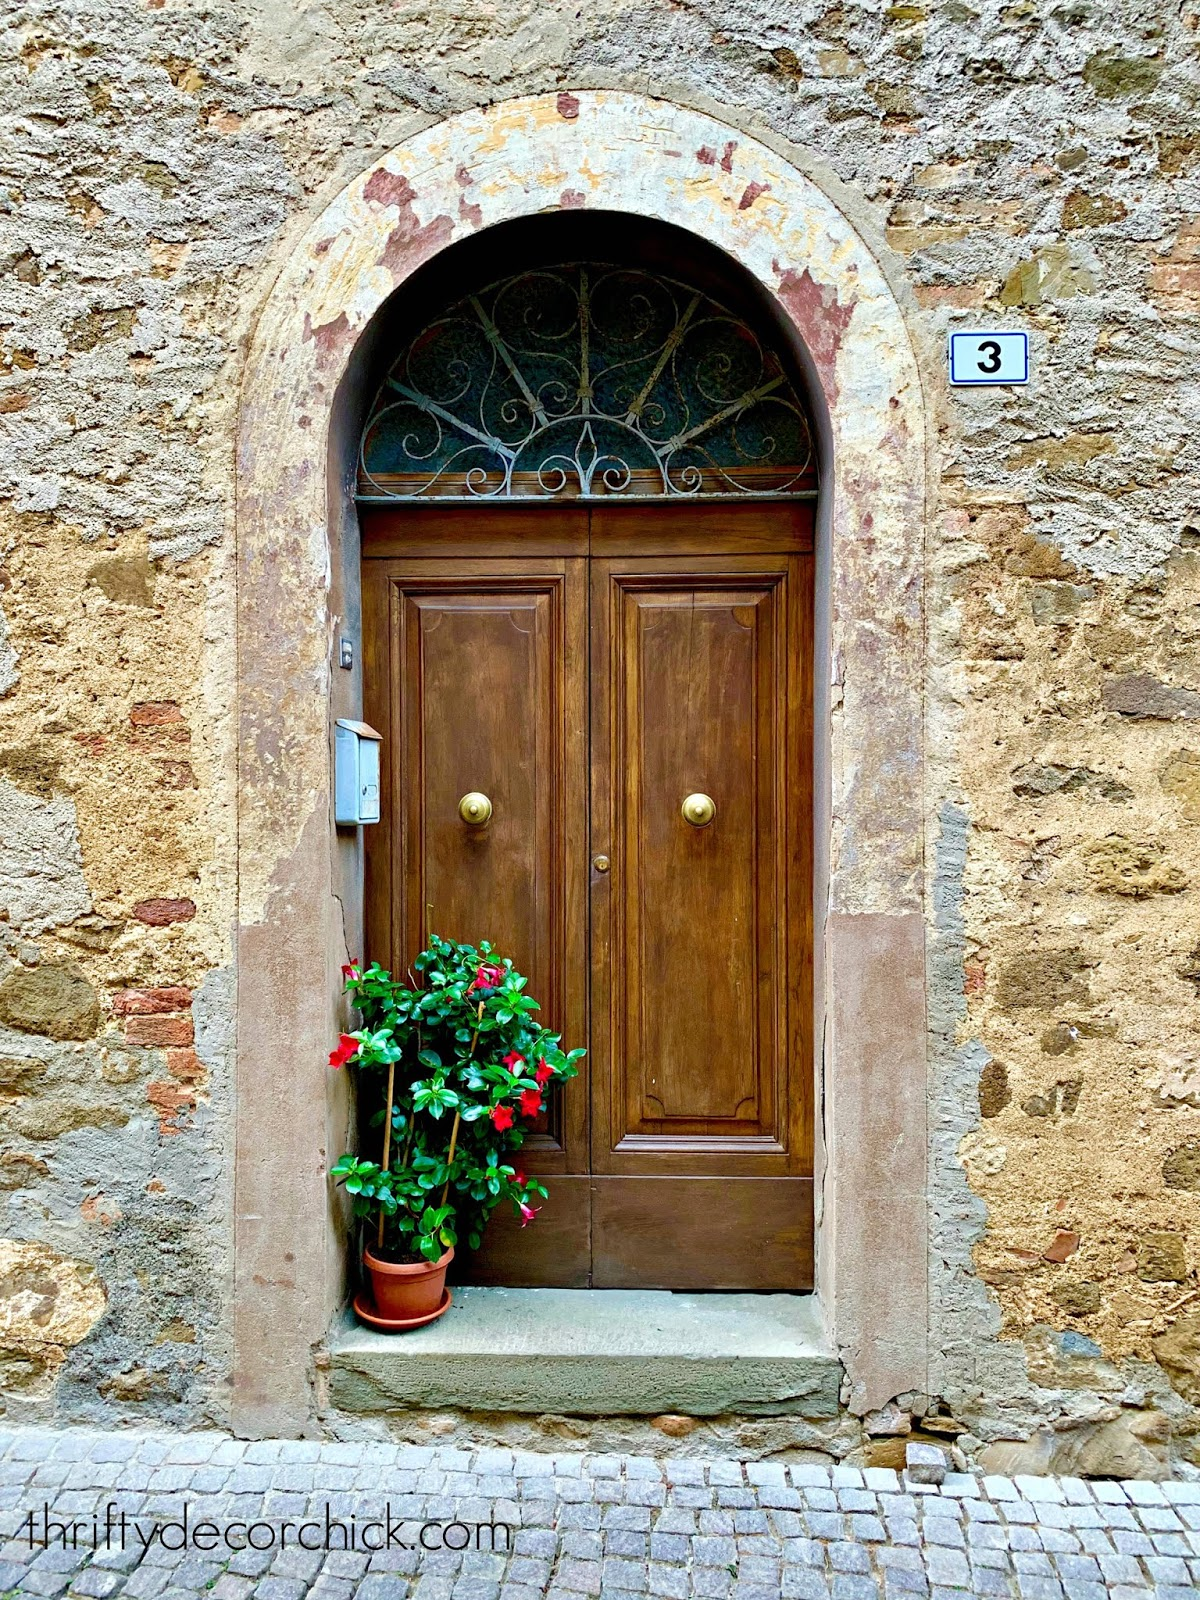 Rounded wood doorway in Italy